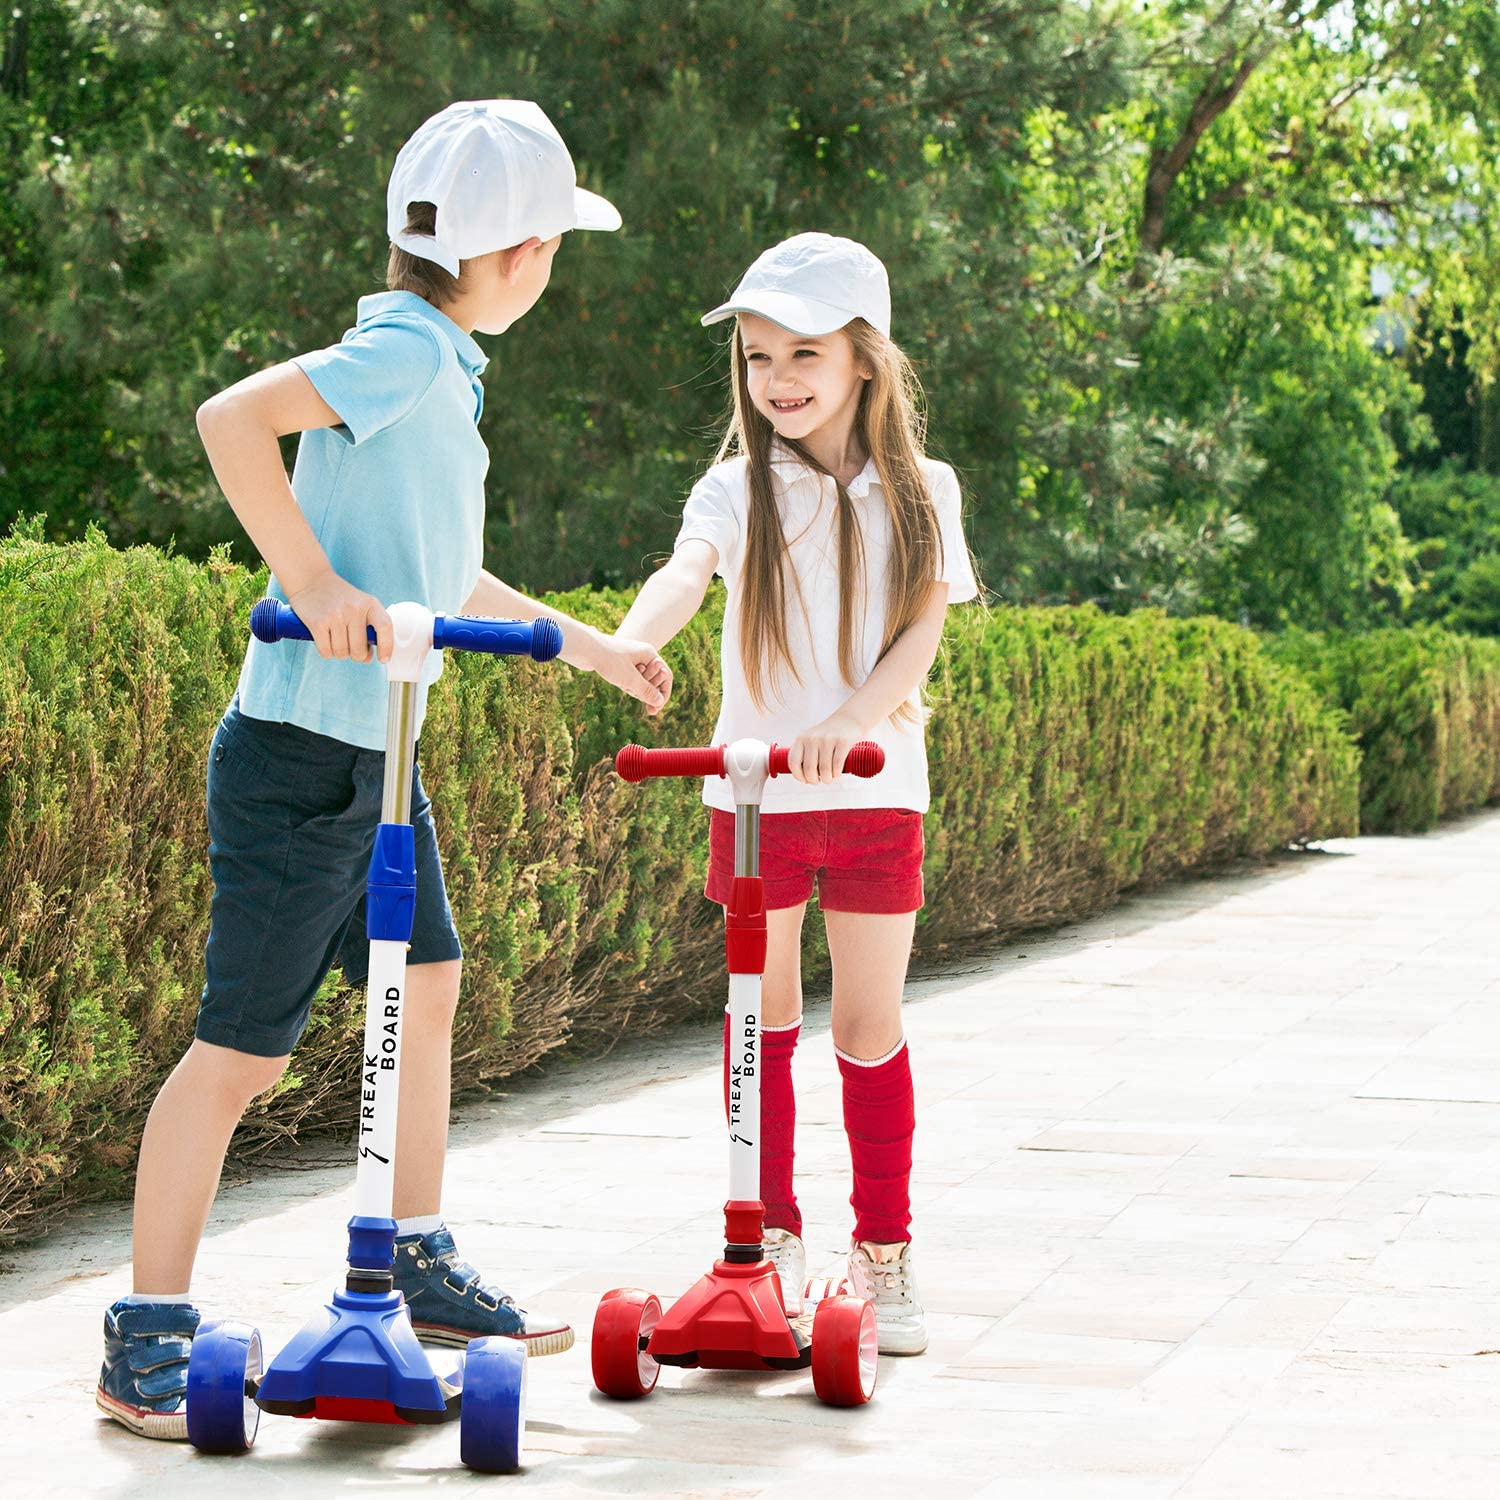 Kick Scooter for Kids Featuring Quick-Release Folding System Foldable with 3 Adjustable Height Wide Deck Flashing PU Wheels Kickboard Lean-to Steer Scooters for Children Multiple Colors Available